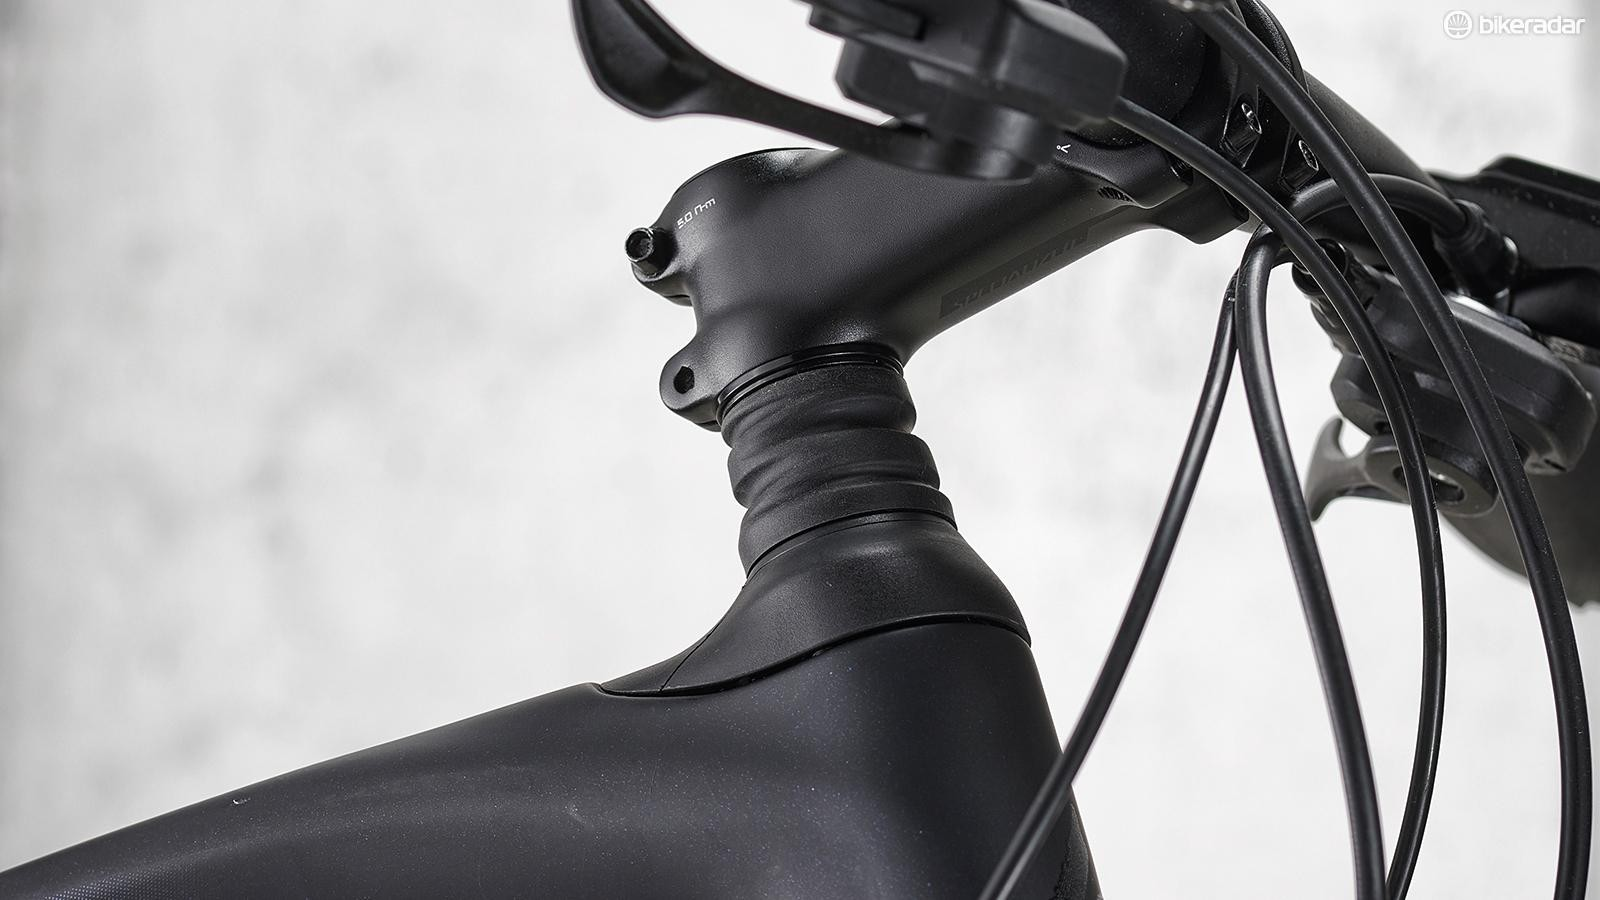 Select bikes fitted with Future Shock are being recalled